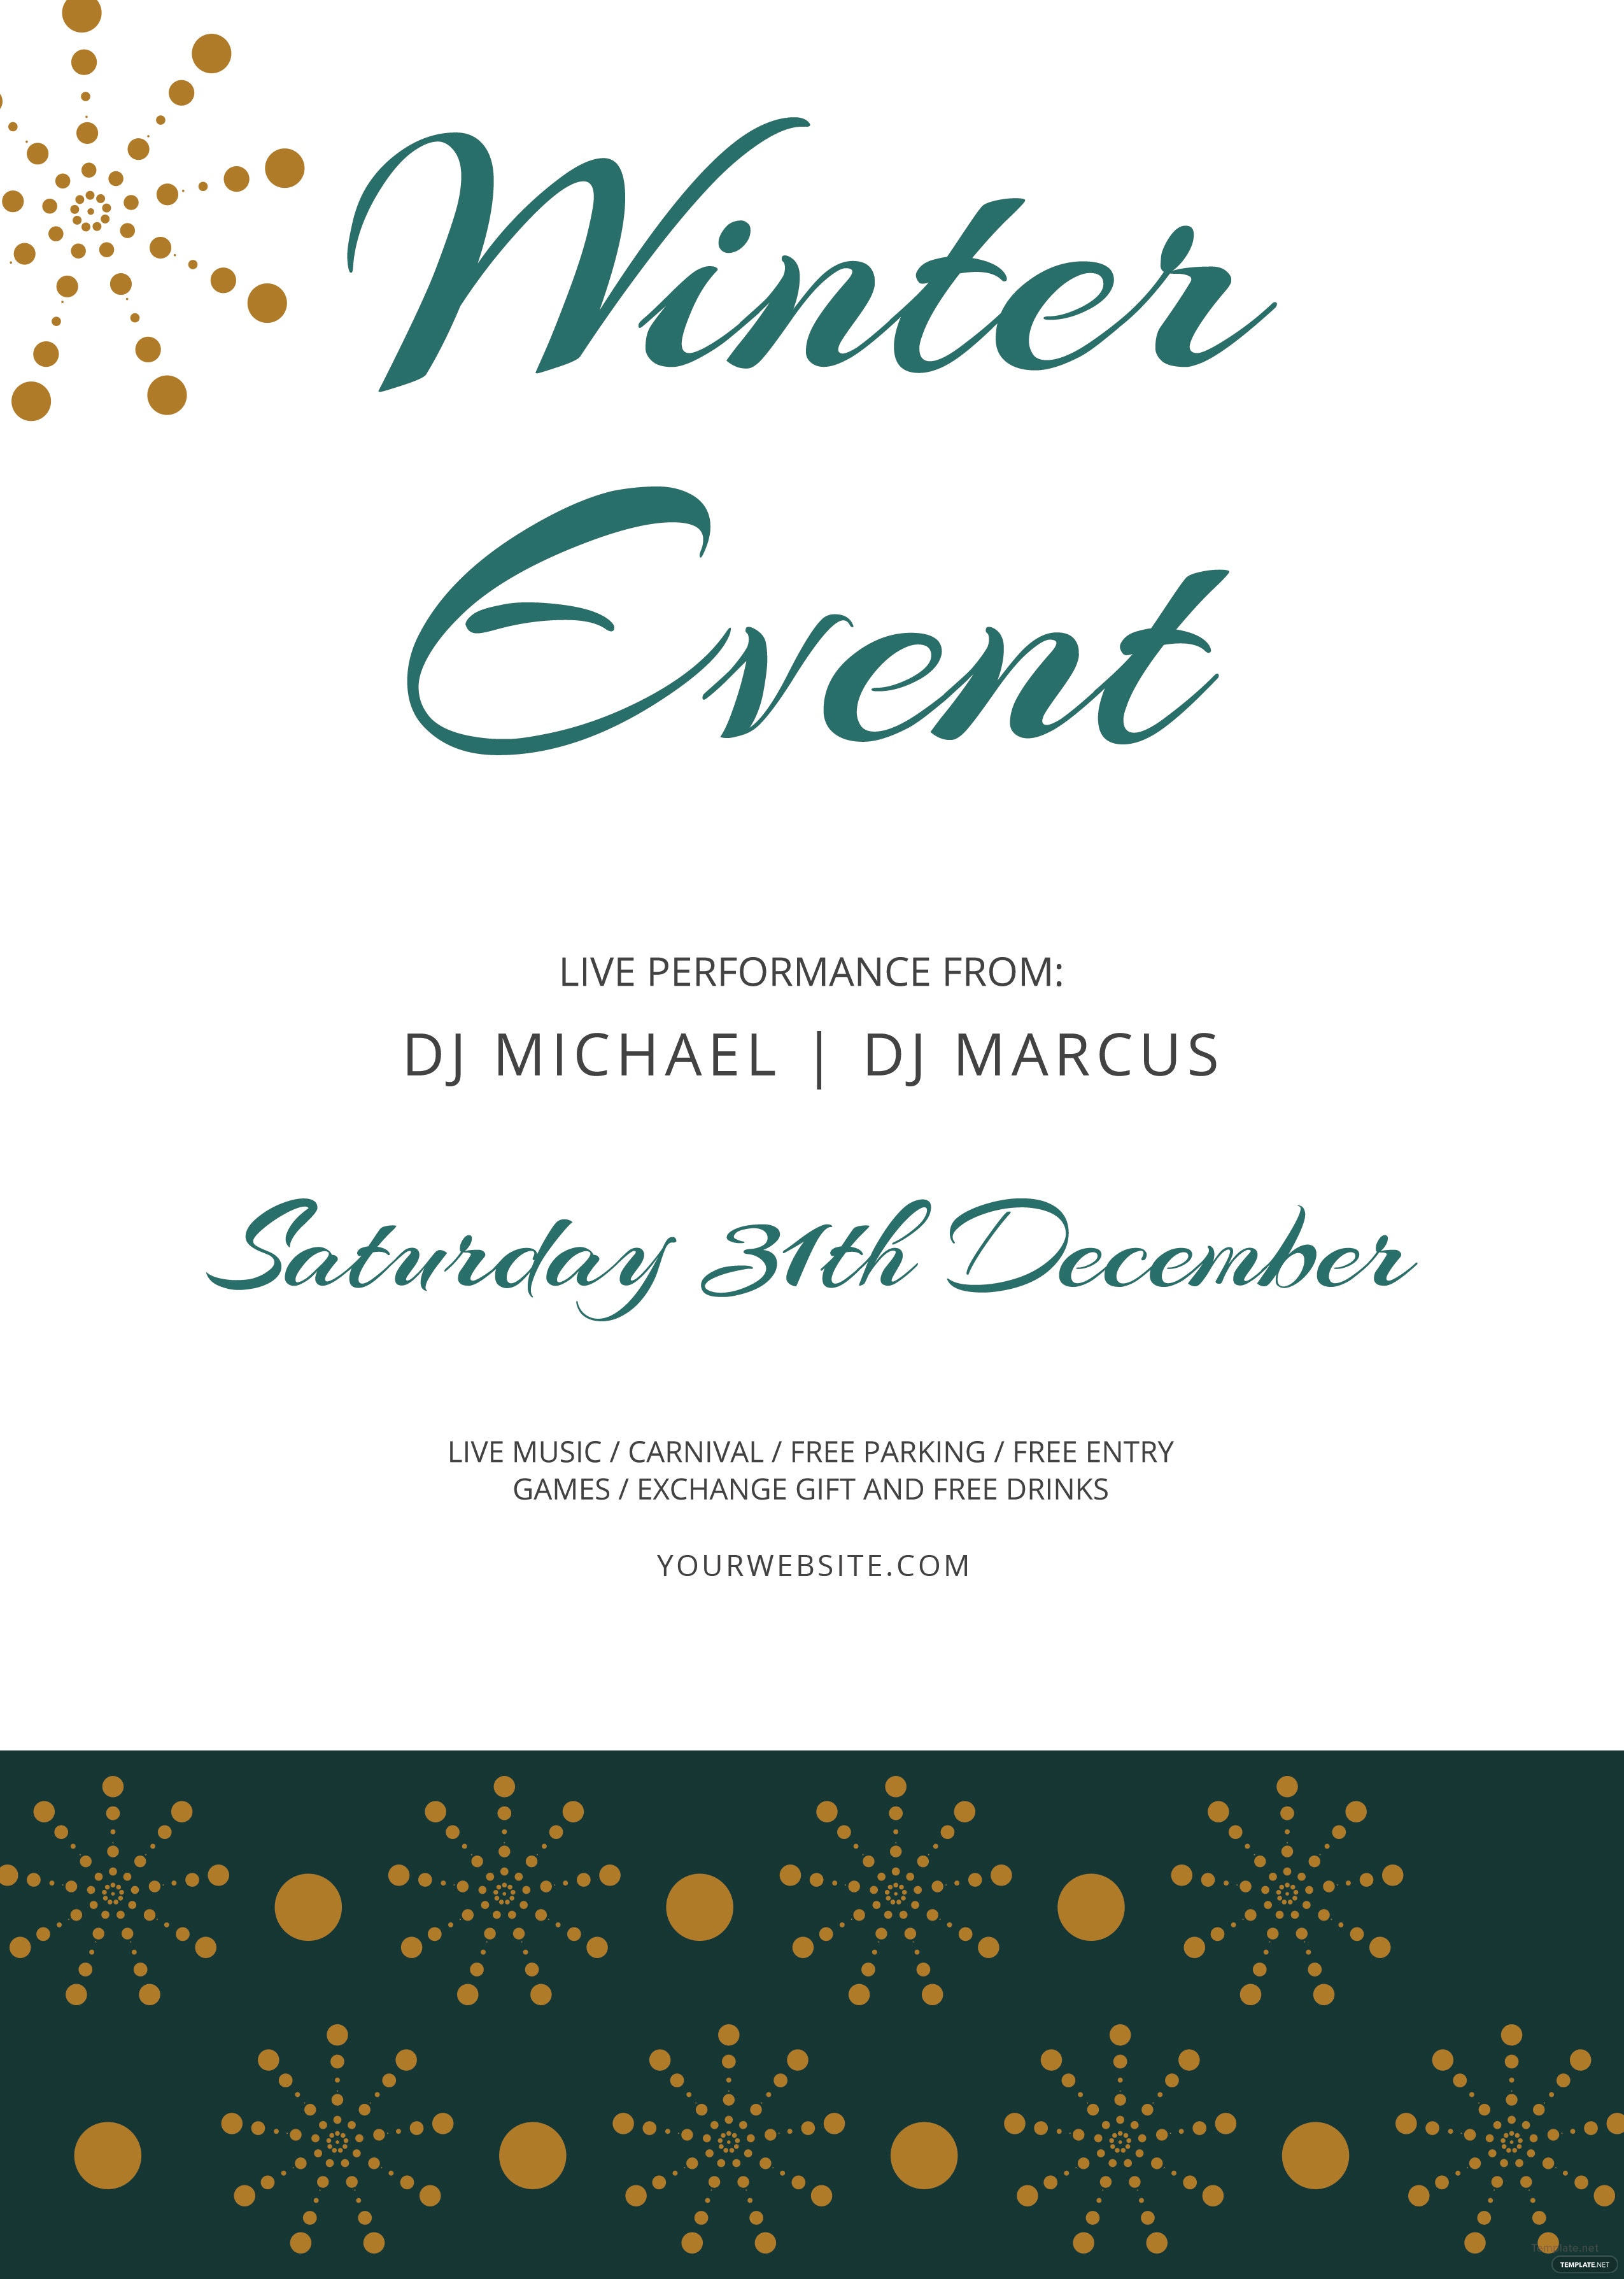 free winter events flyer template in adobe photoshop